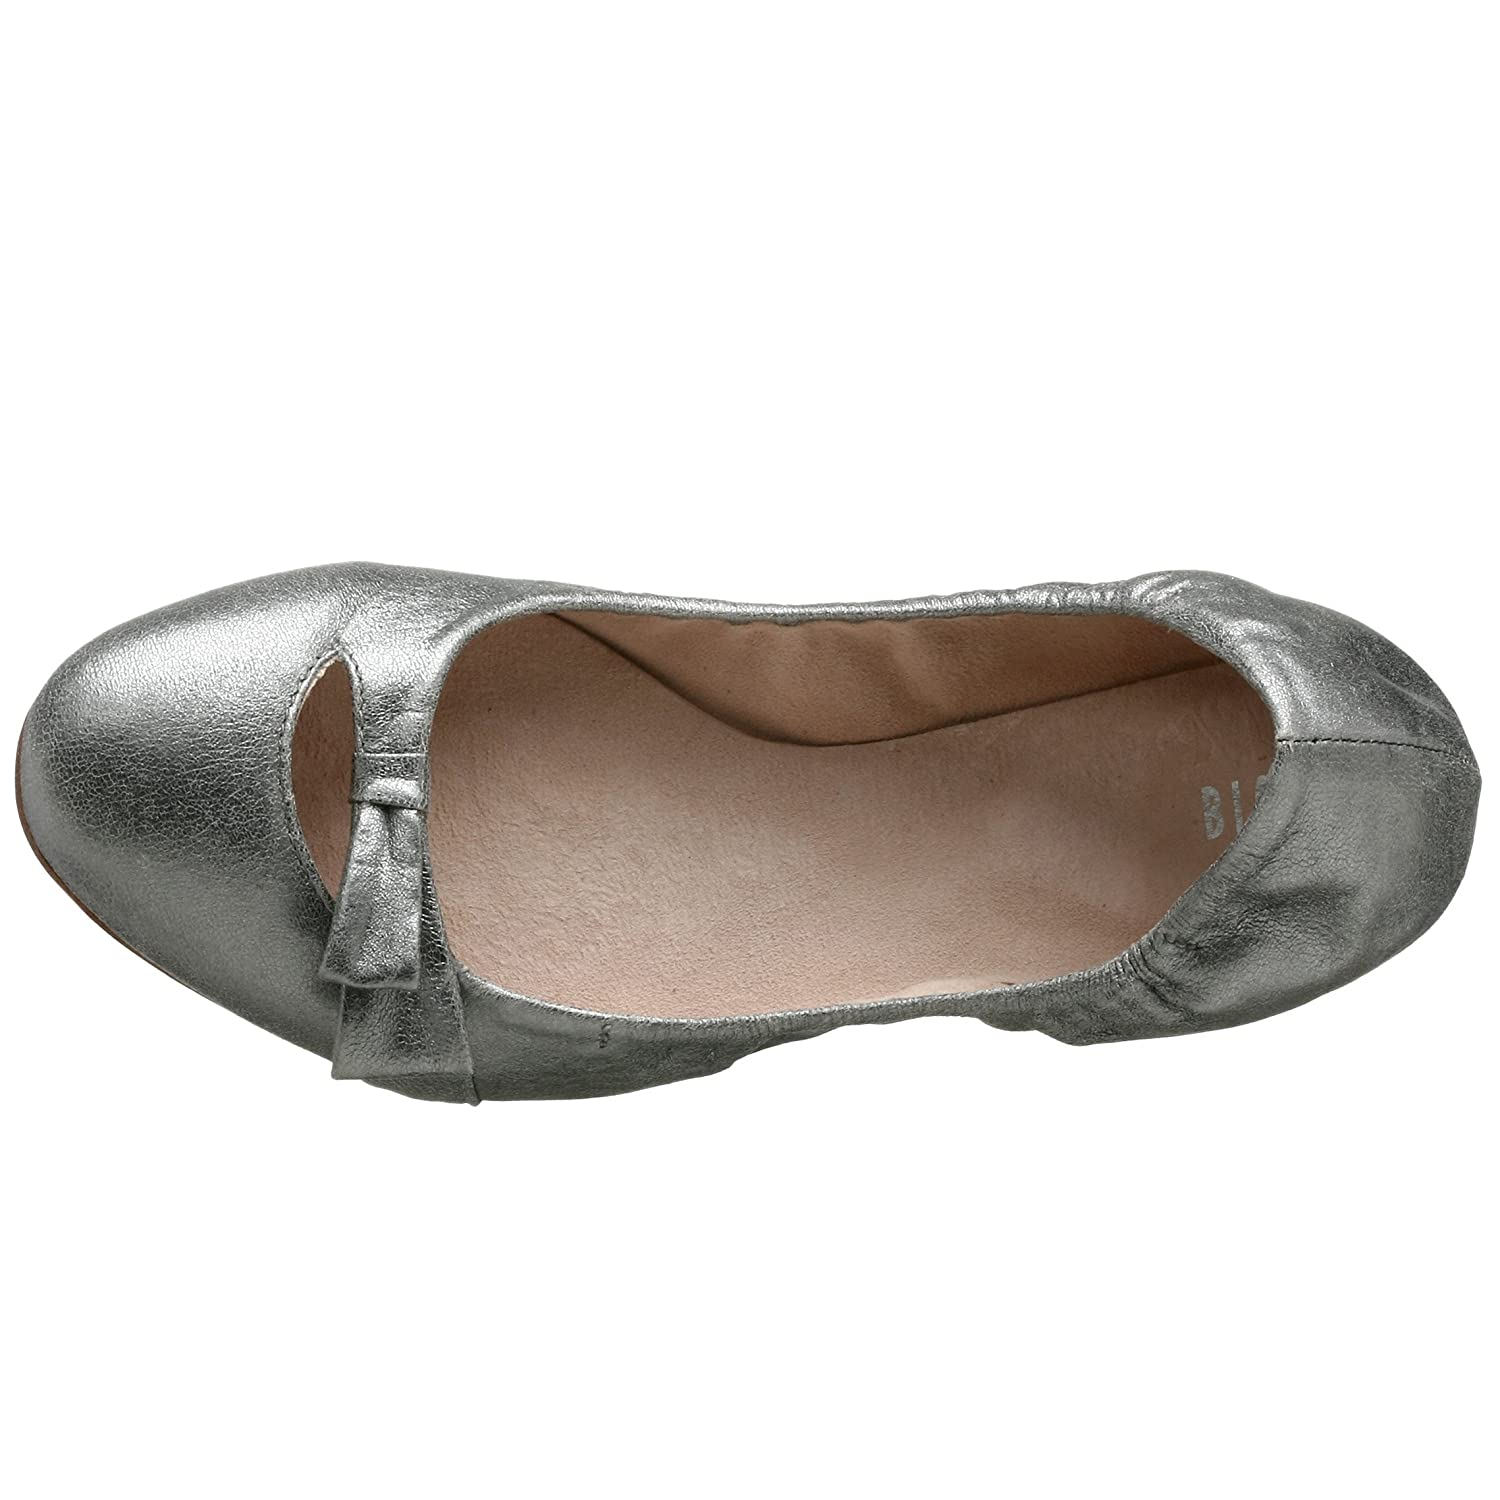 Bloch London Side Star Bow Ballet Flat - Free Overnight Shipping & Return Shipping: Endless.com :  bow dance shoes flats ballerina